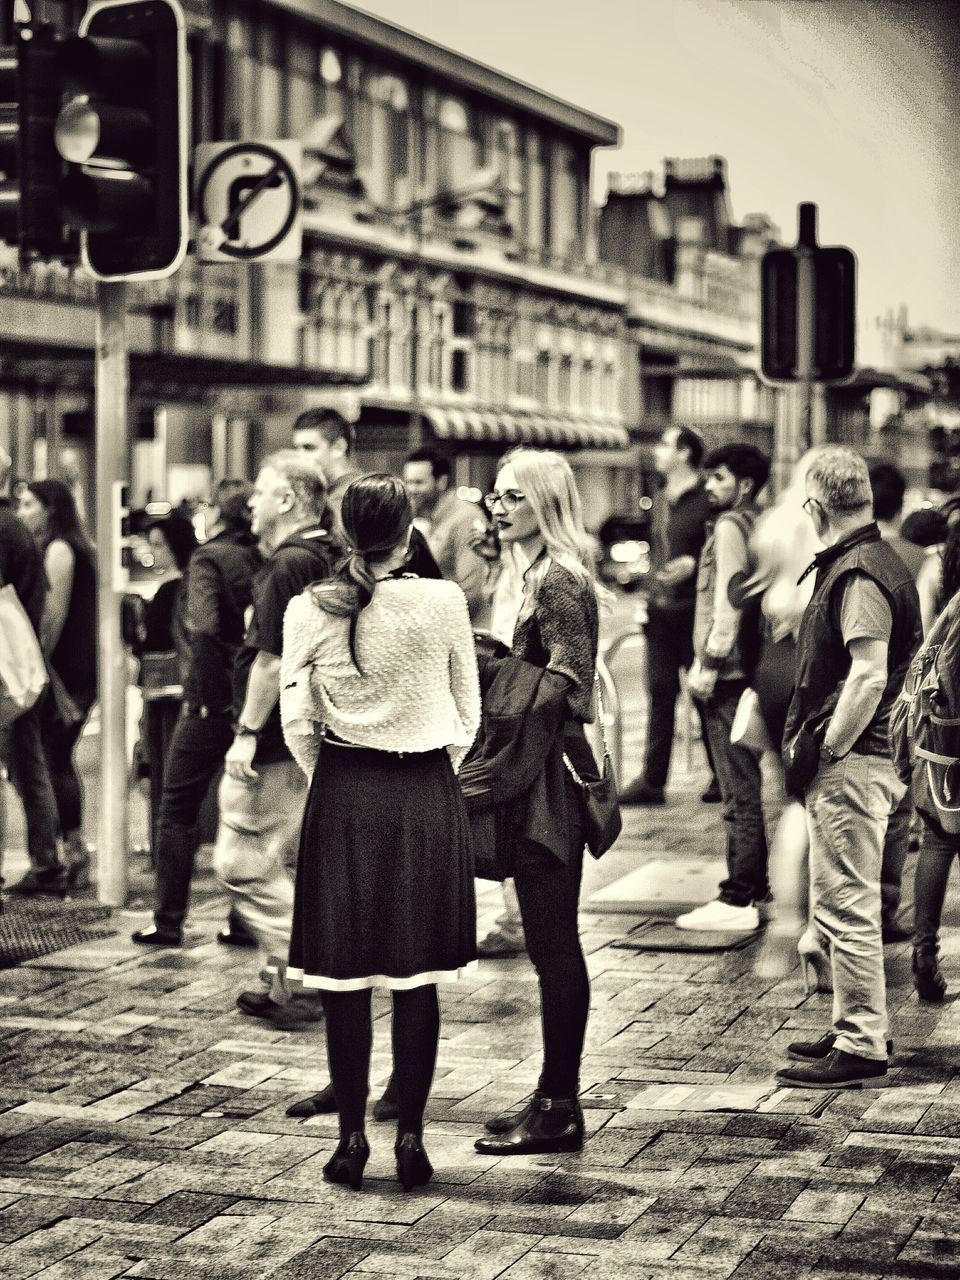 real people, walking, full length, togetherness, casual clothing, focus on foreground, building exterior, group of people, lifestyles, outdoors, standing, women, men, large group of people, day, city, friendship, crowd, adult, people